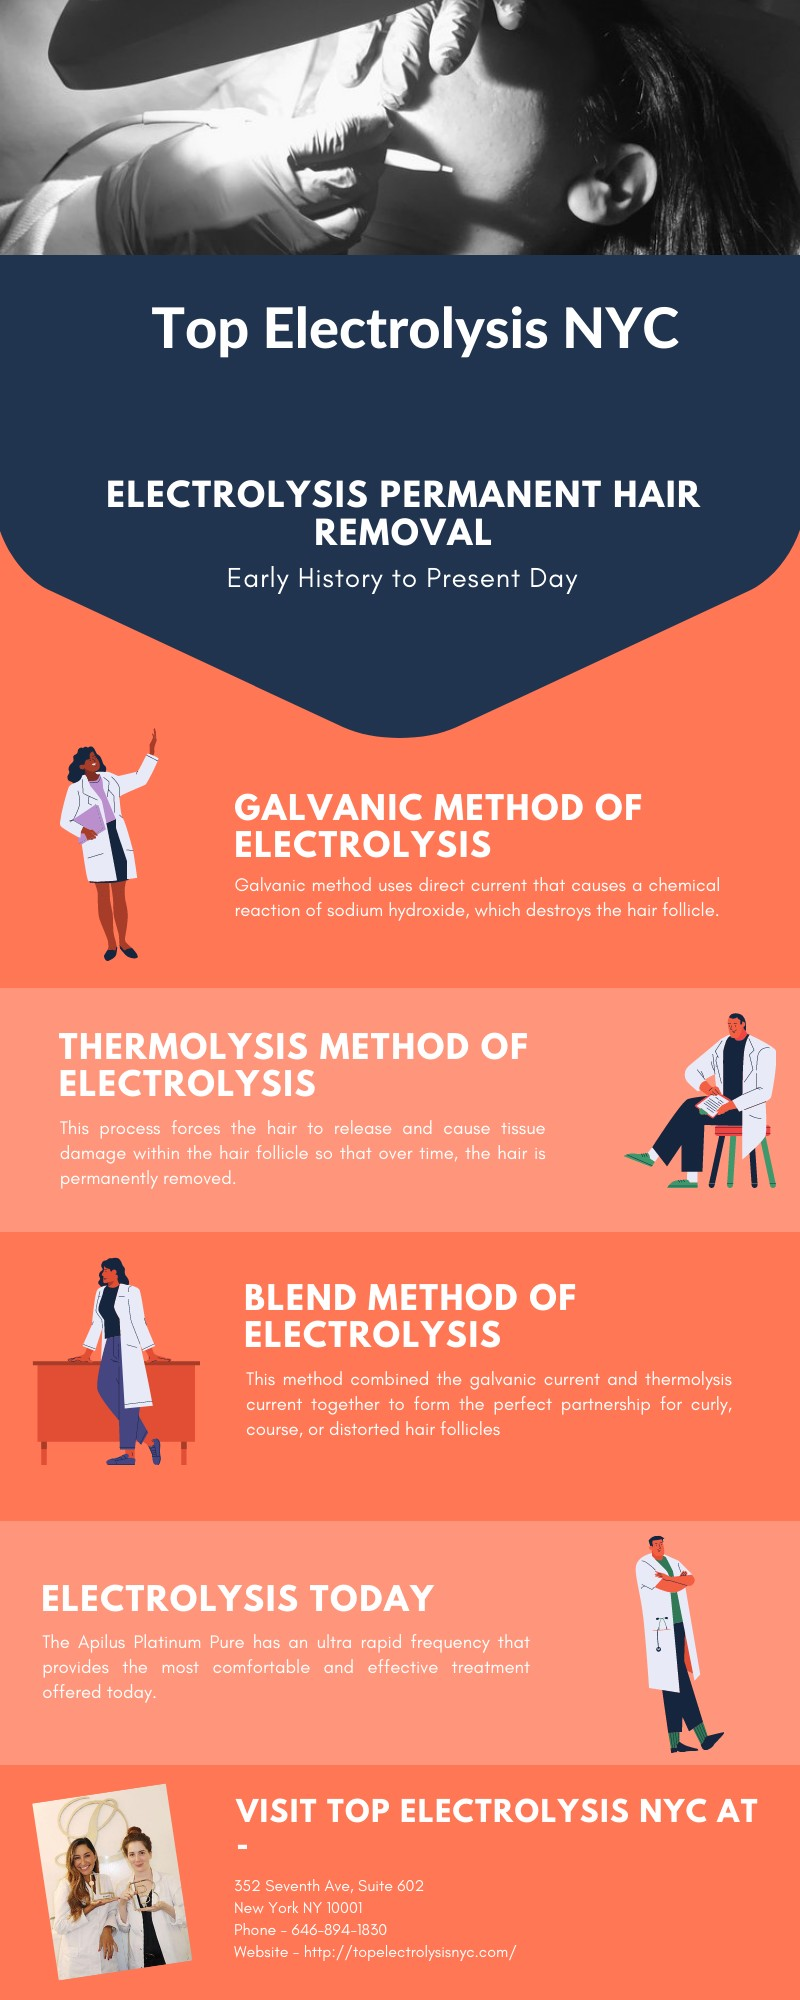 Electrolysis Permanent Hair Removal - Early History to Present Day